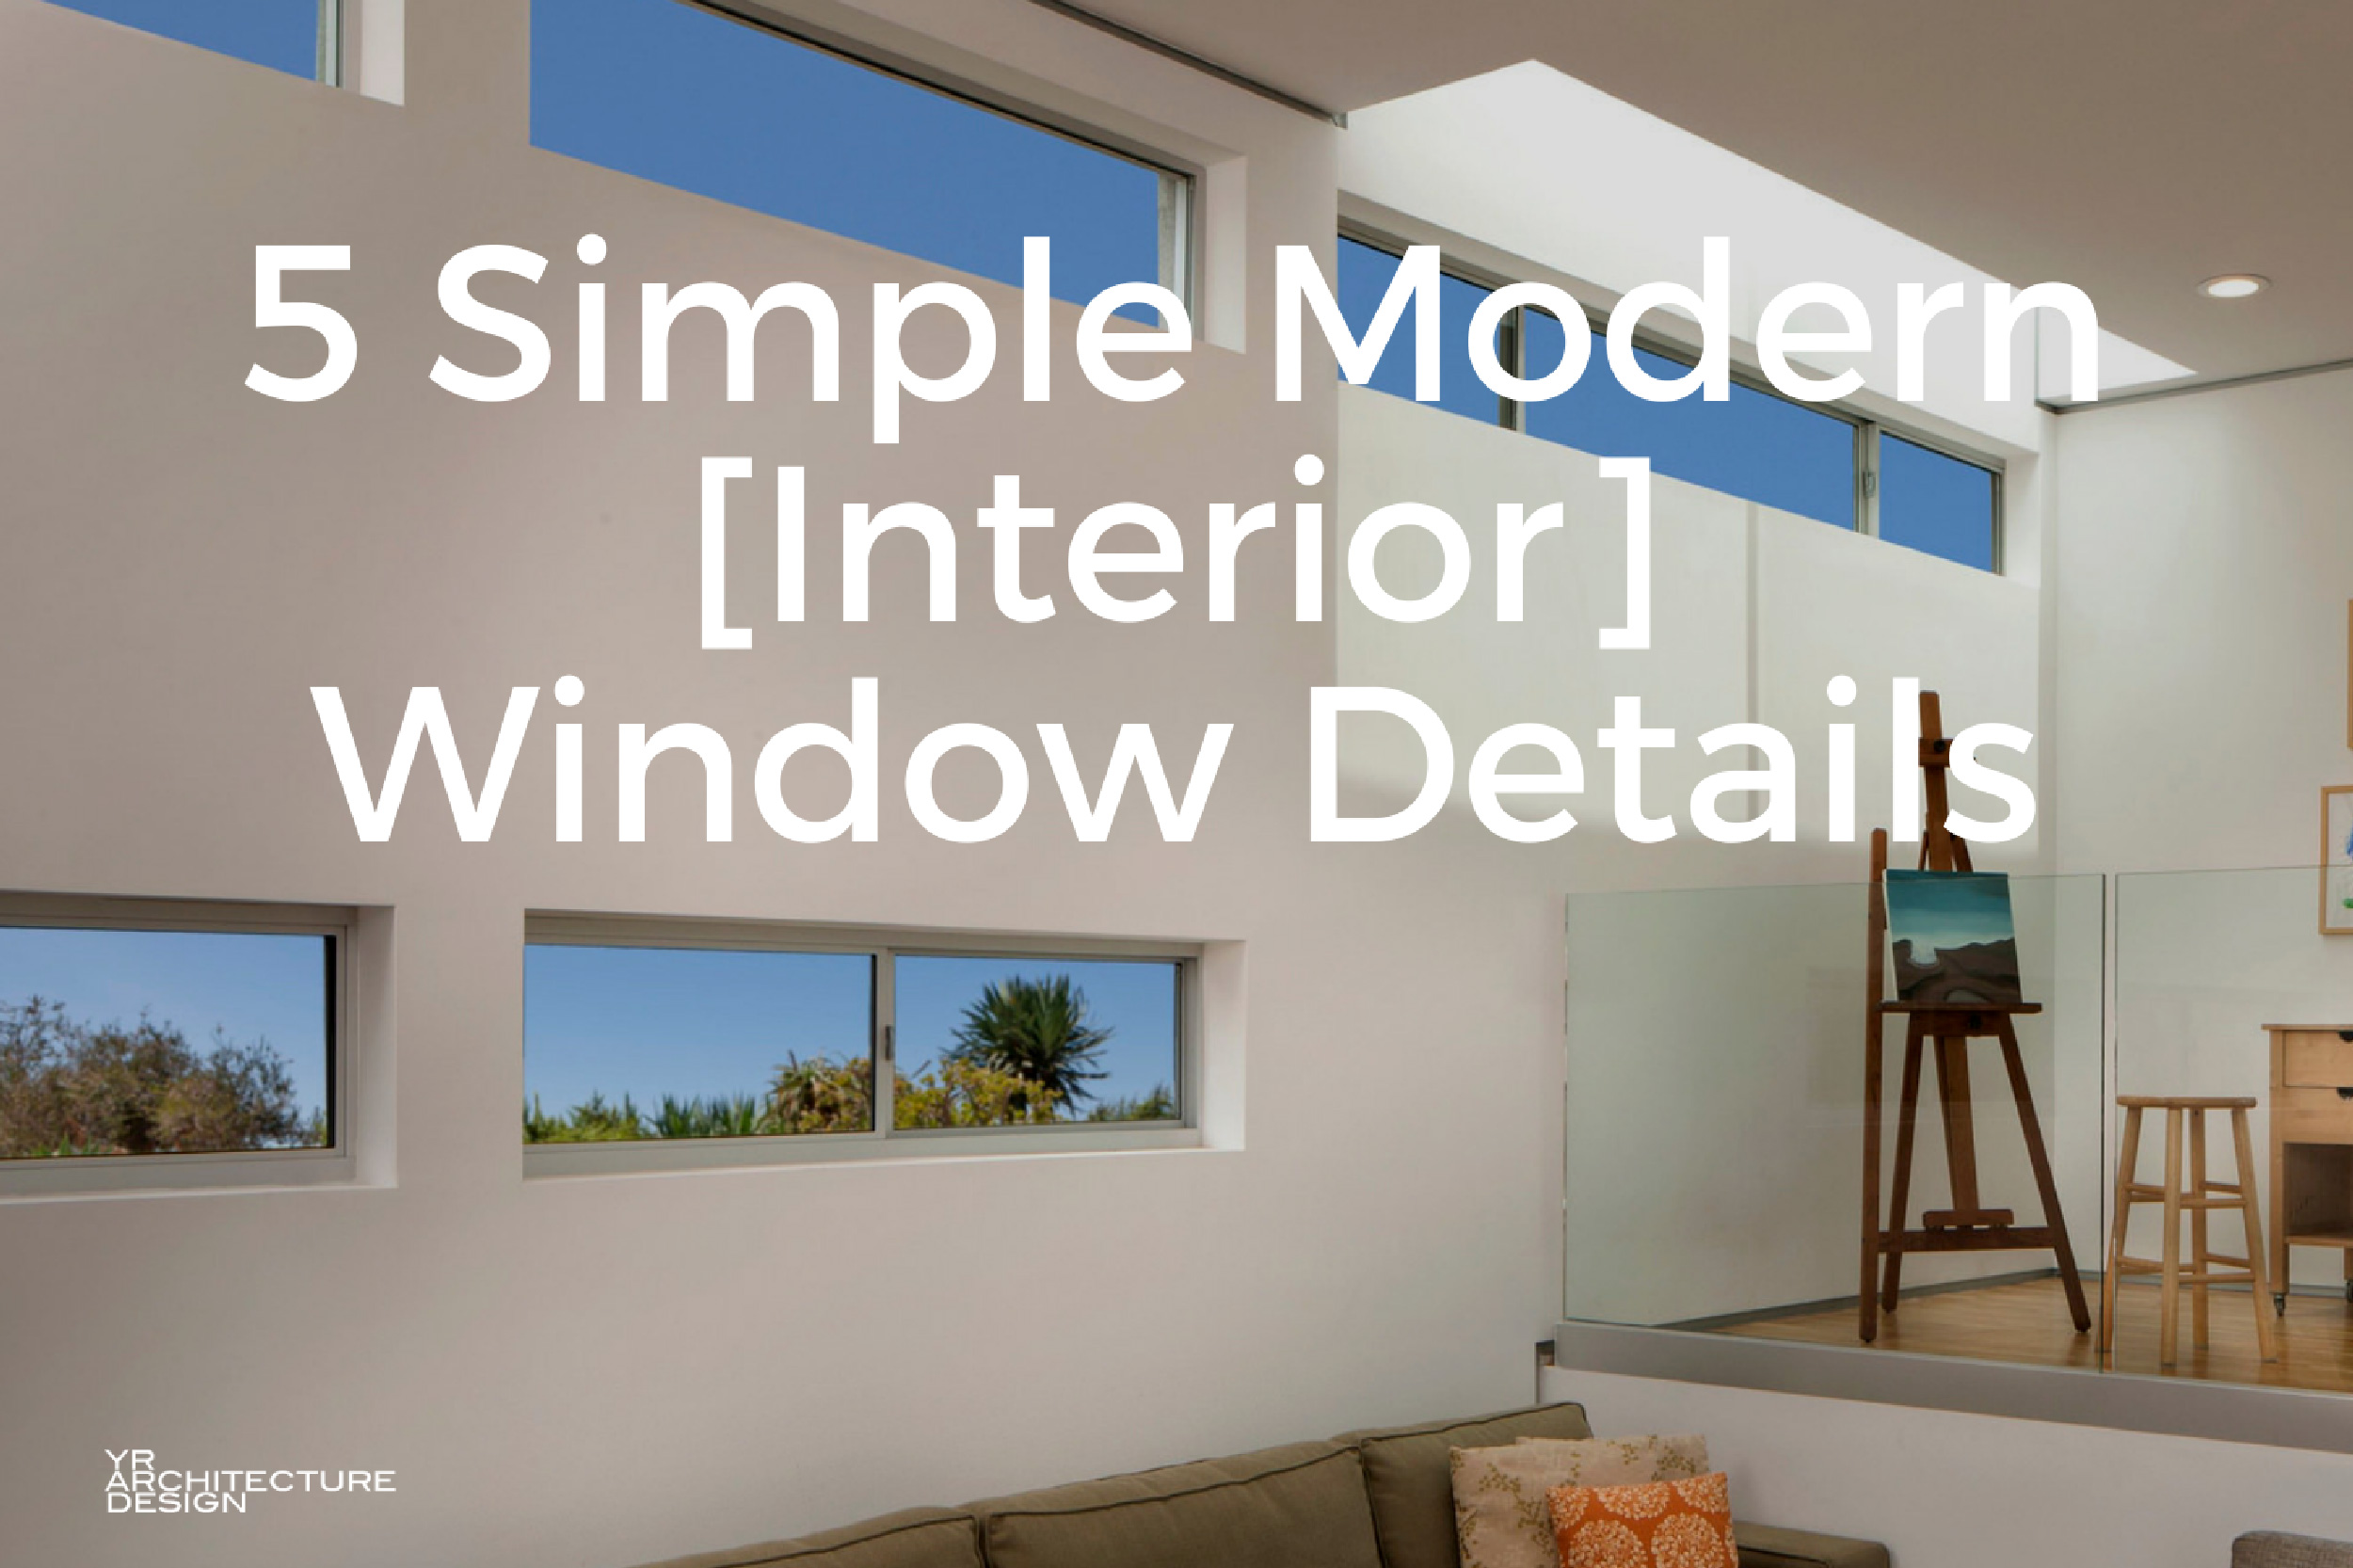 5 Simple Modern [Interior] Window Trim Details